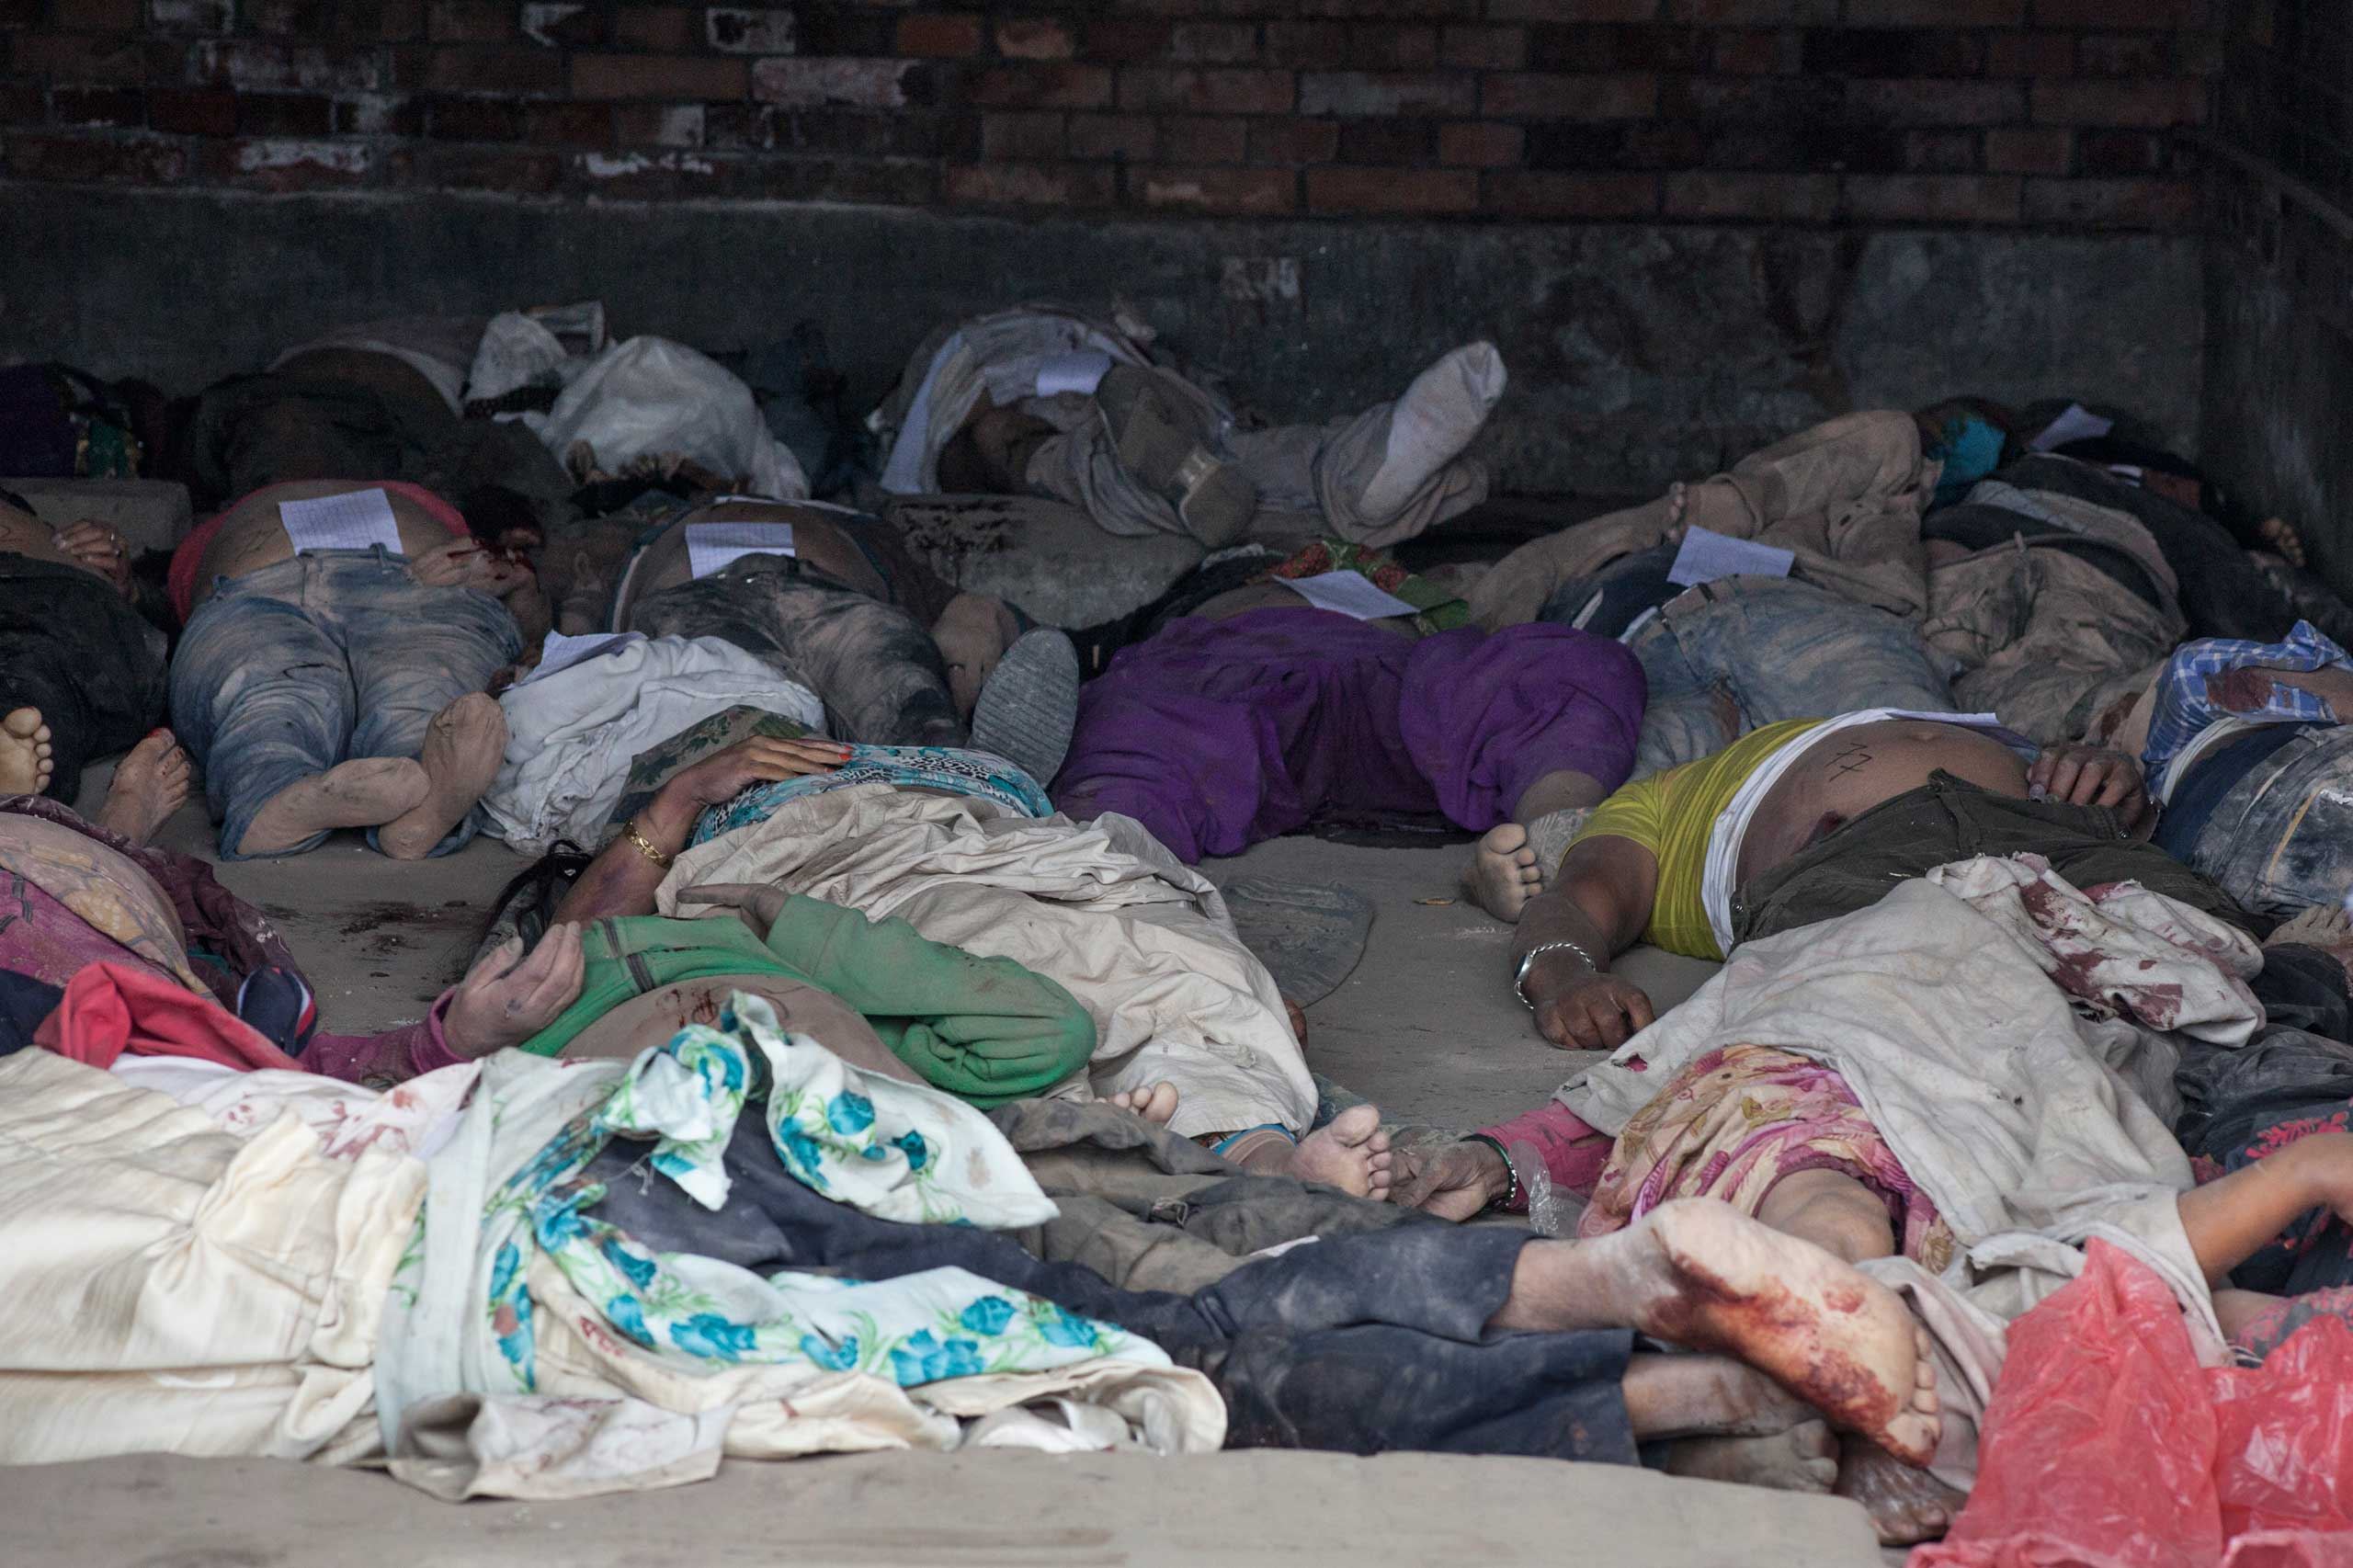 Bodies kept for identification at Tribhuvan University Teaching Hospital in Maharajgunj, Kathmandu, on April 26, 2015.